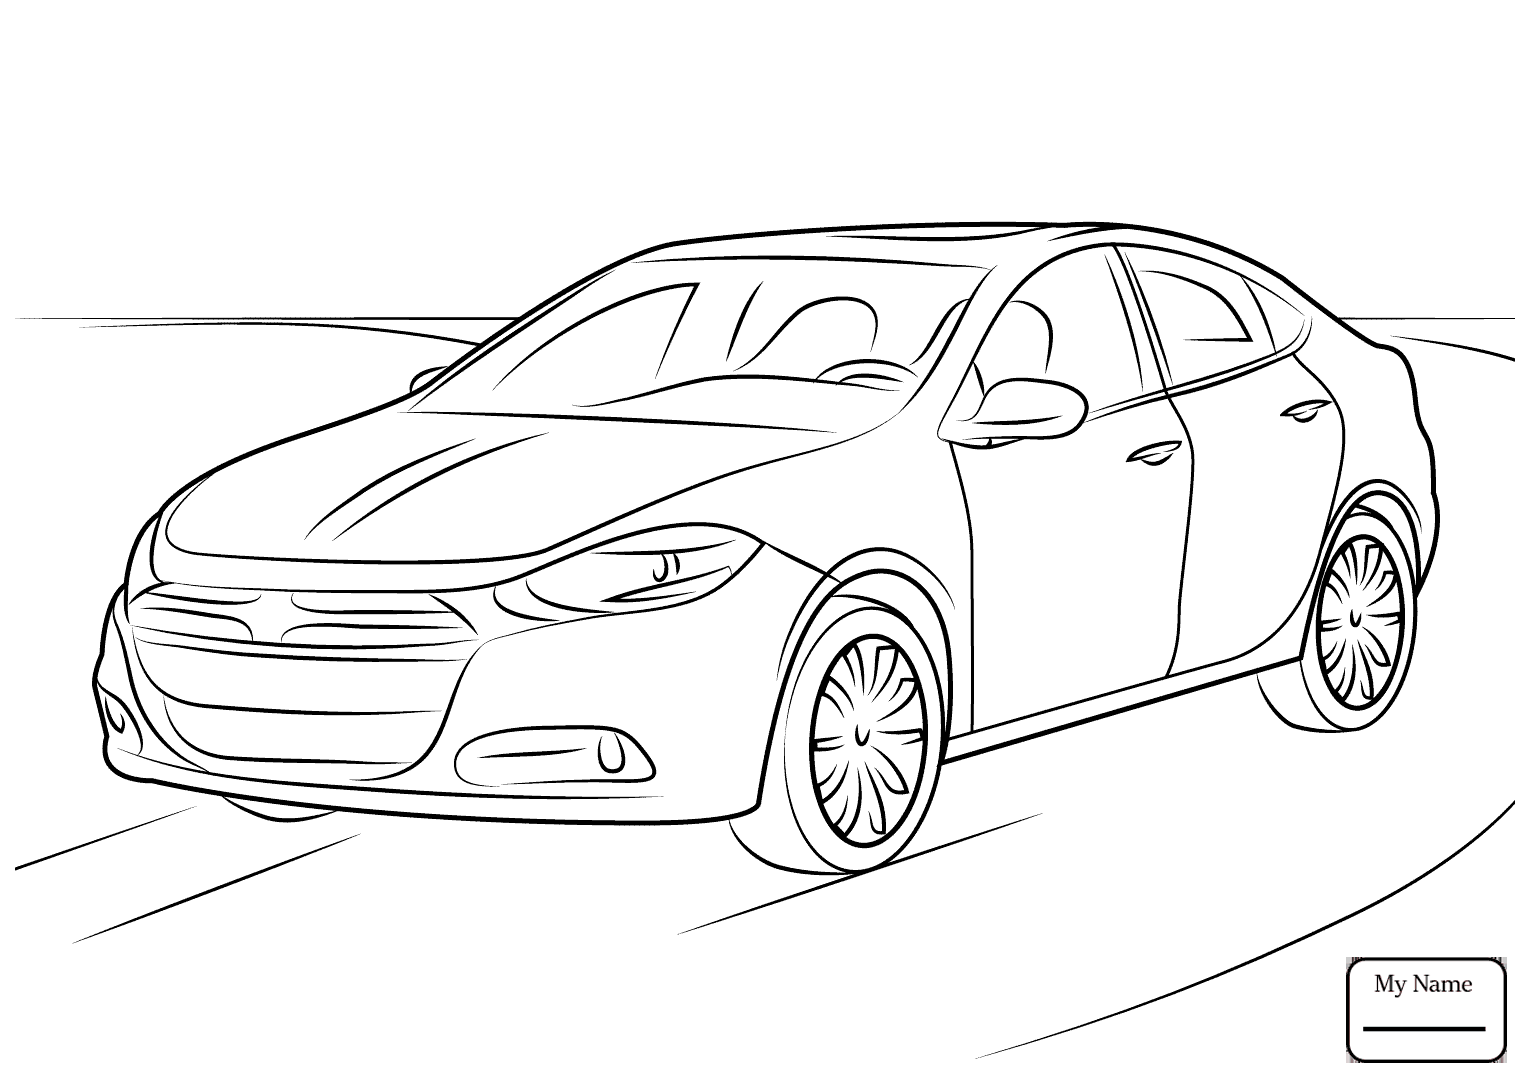 Dodge Charger Drawing at GetDrawings com | Free for personal use